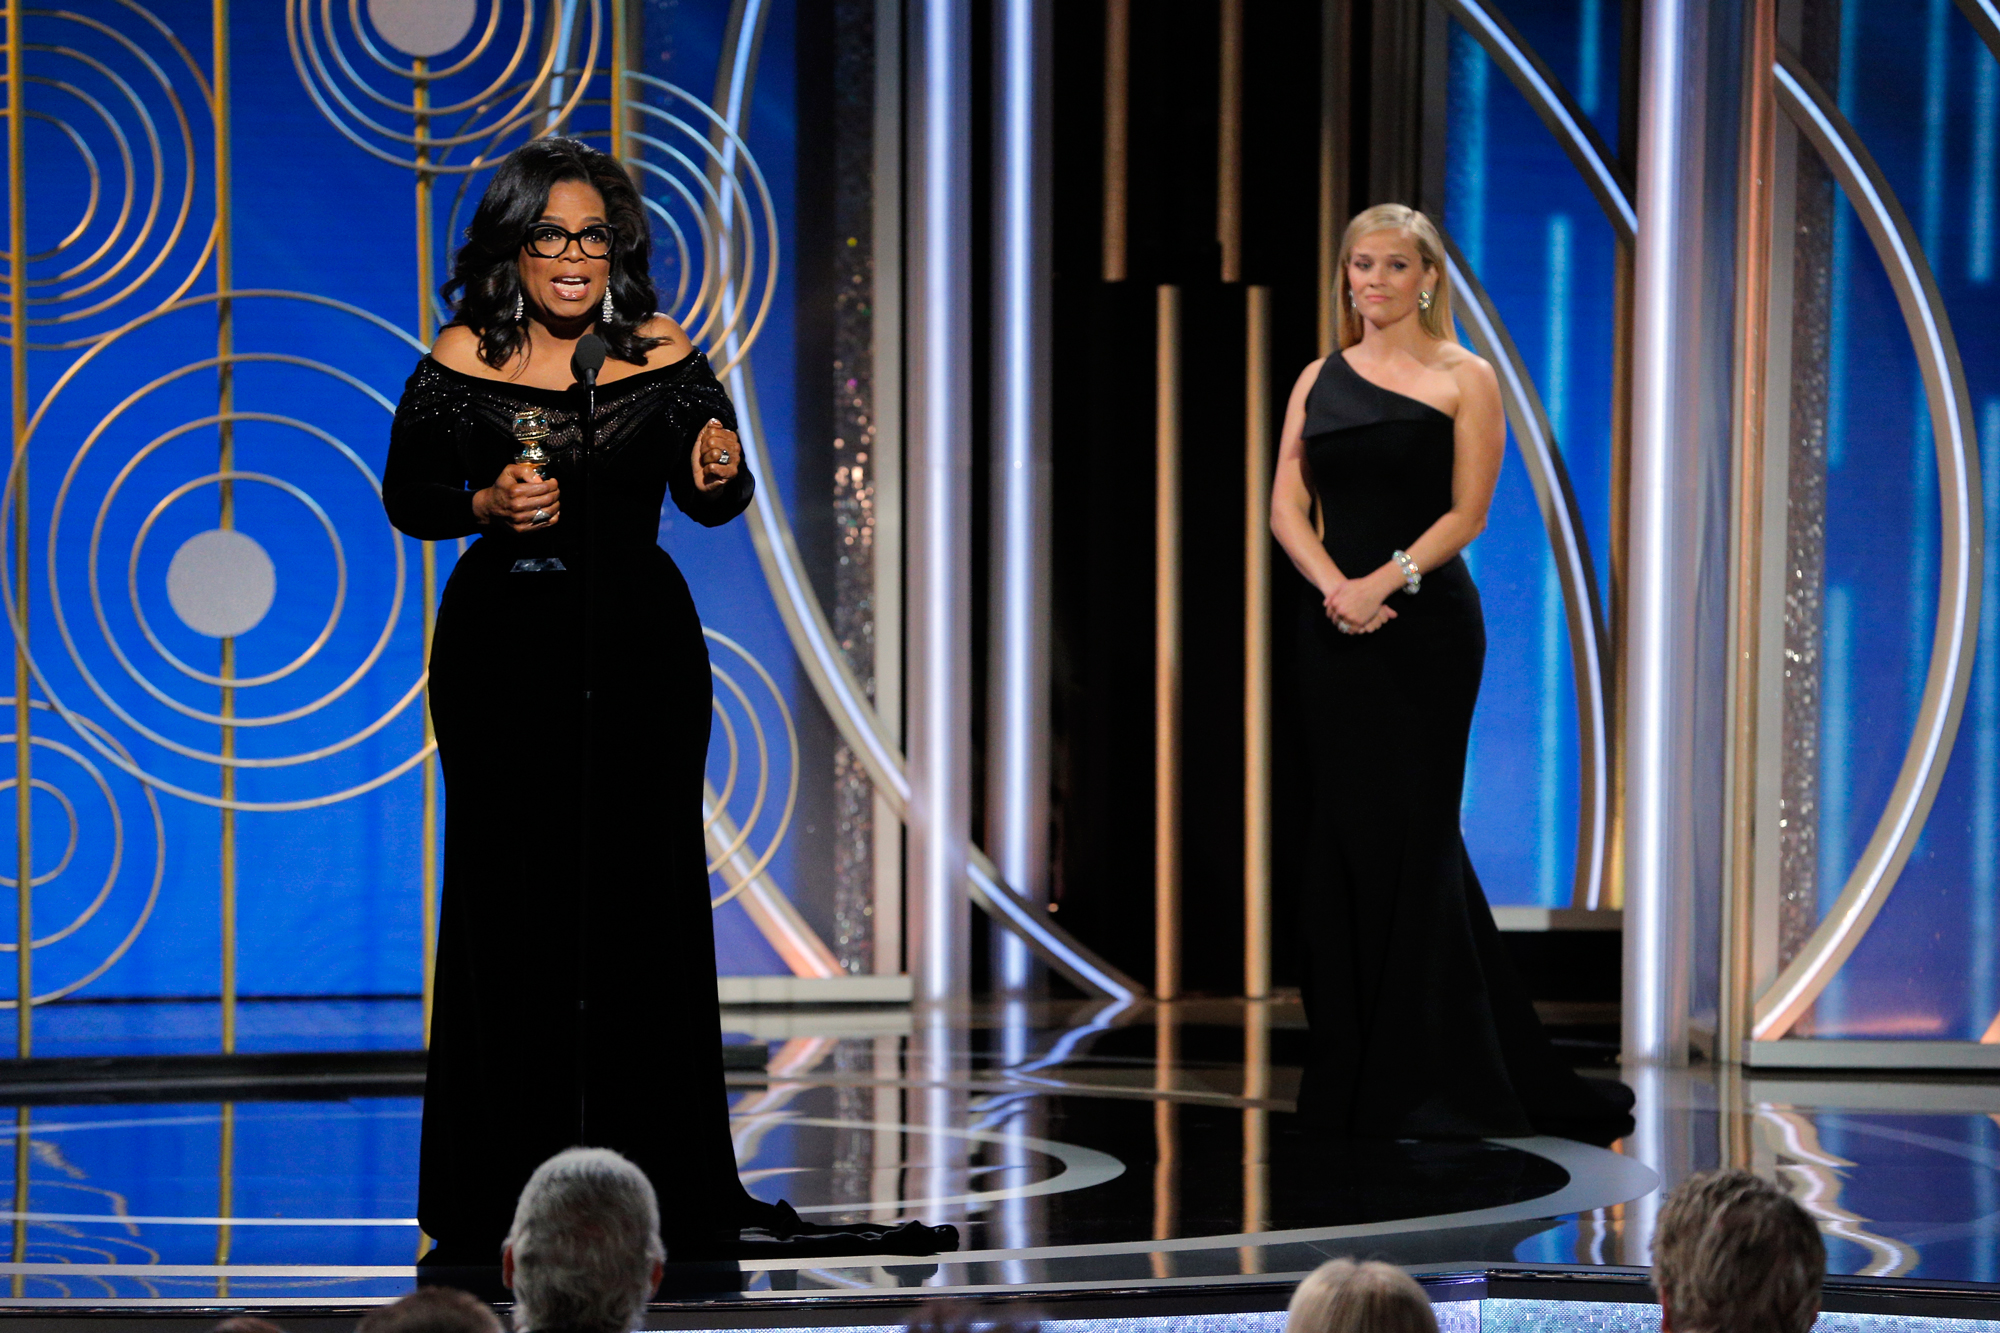 Oprah Winfrey Reese Witherspoon Golden Globes - Lead